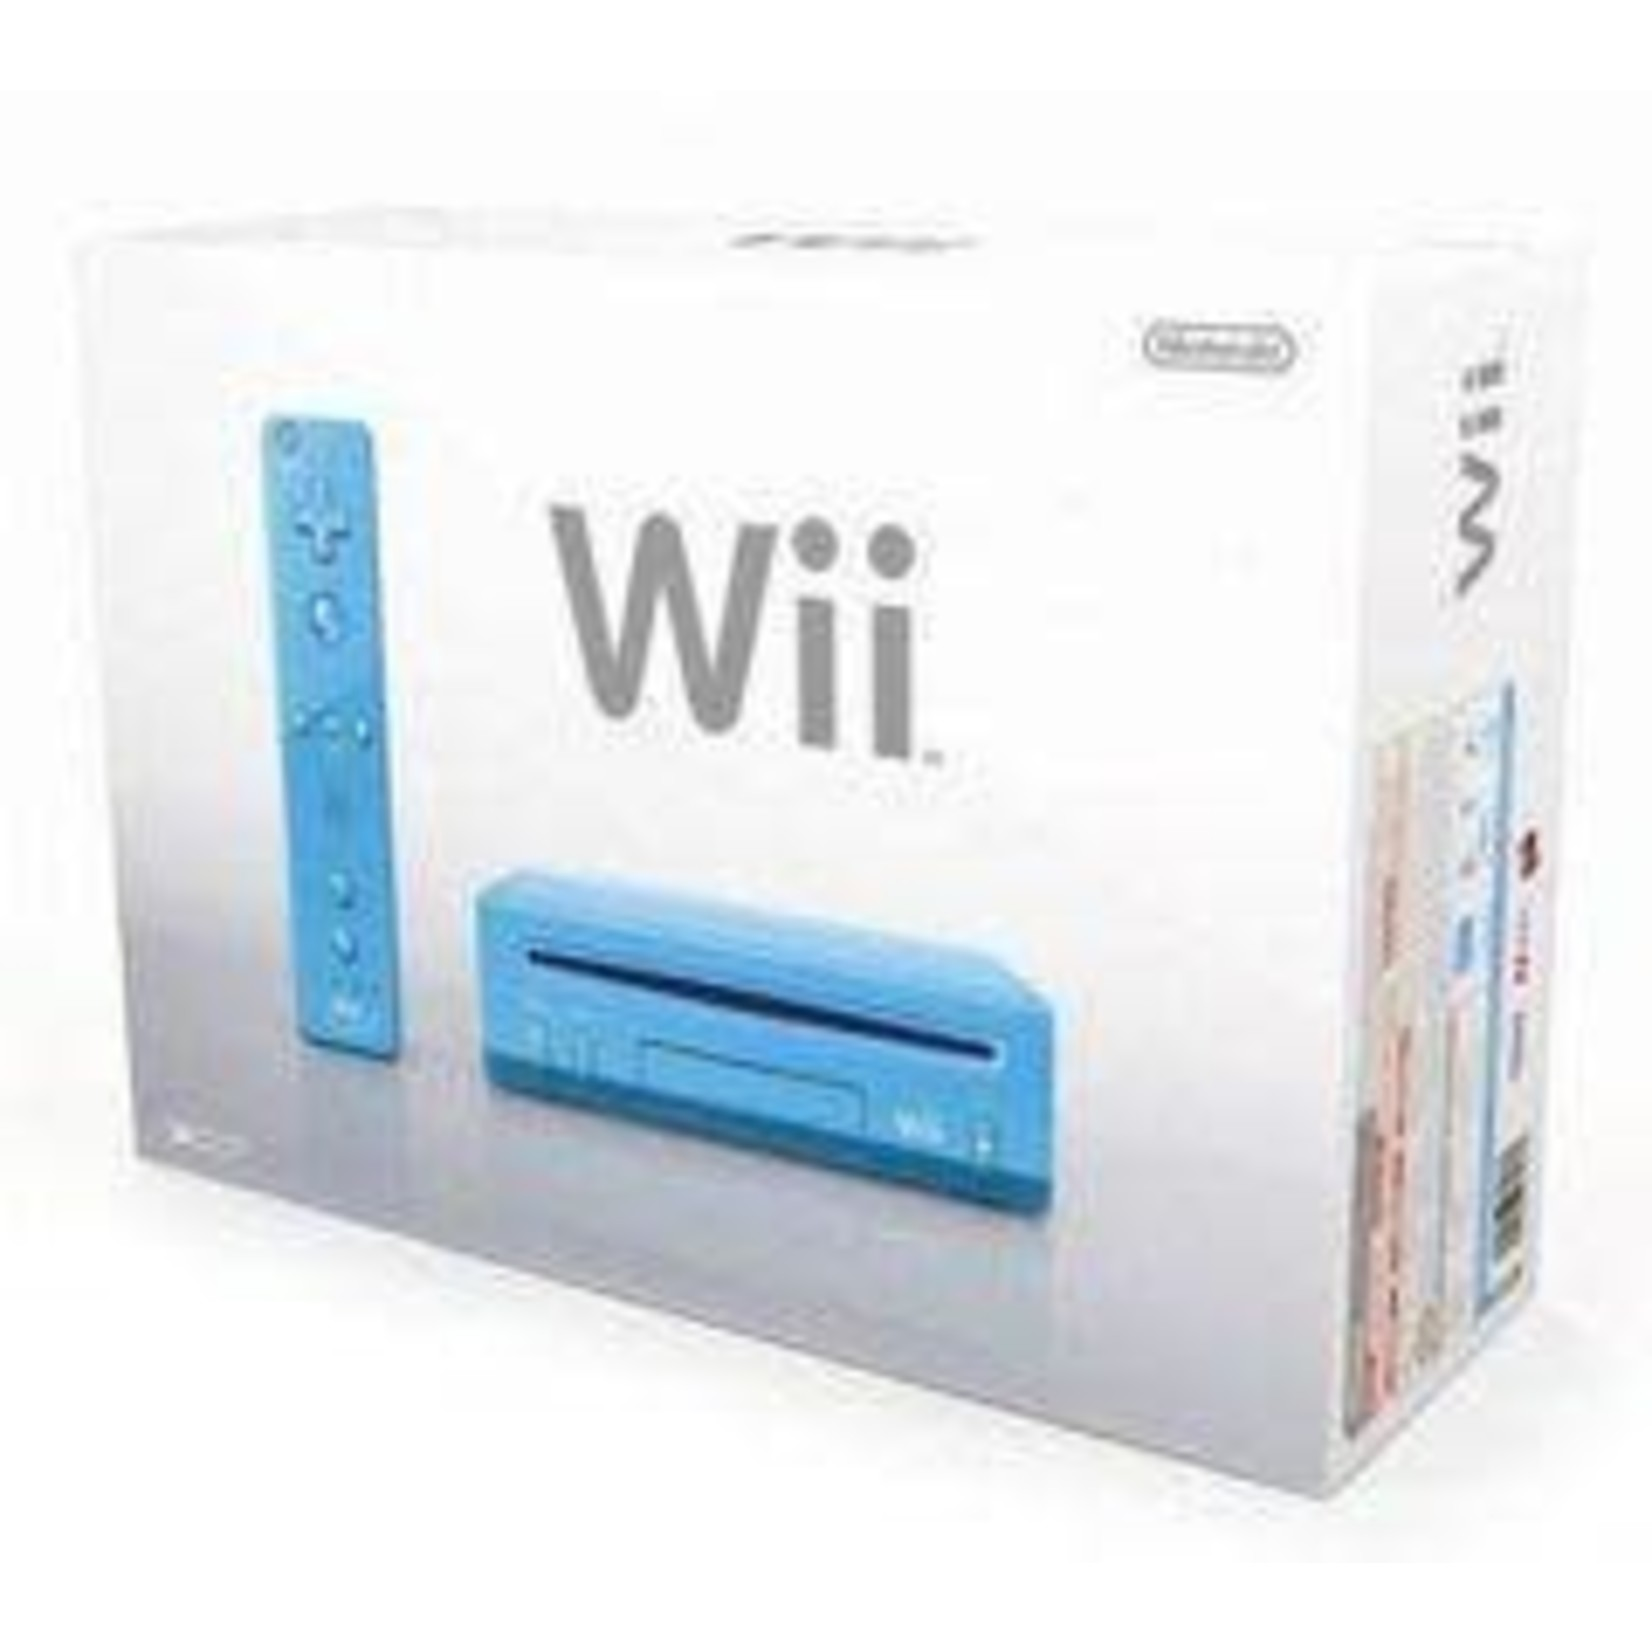 SYSTEM-Used Wii (Blue)(Complete in Box)